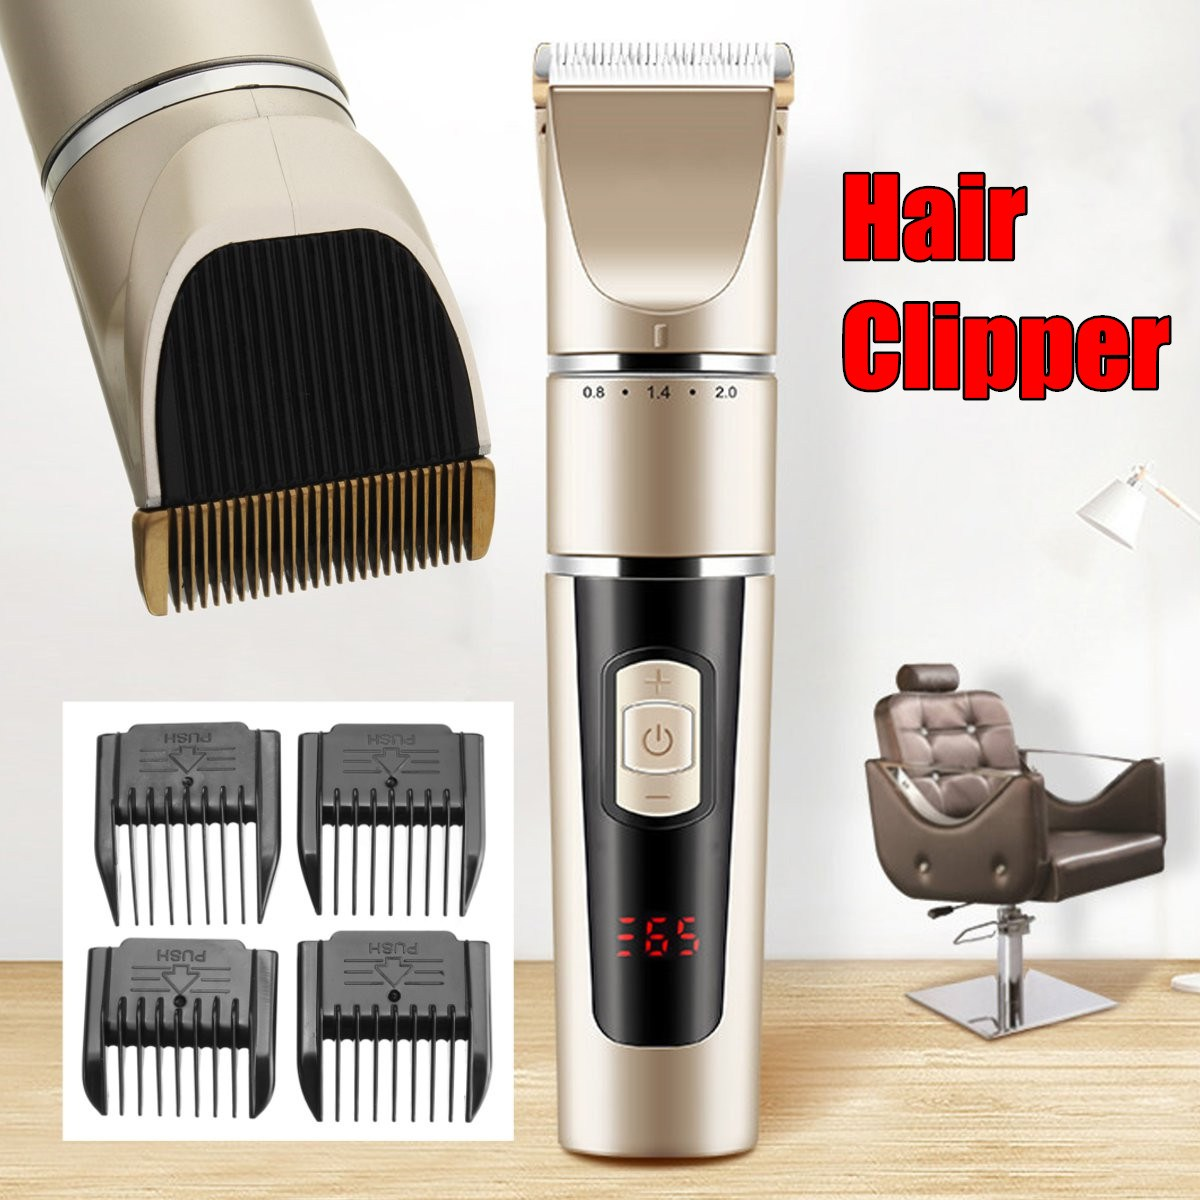 Professional Electric Hair Clipper Rechargeable Hair Trimmer Hair Cutting Machine To Haircut Beard Trimer professional electric hair clipper trimmer child baby men electric shaver hair trimmer cutting machine to haircut hair